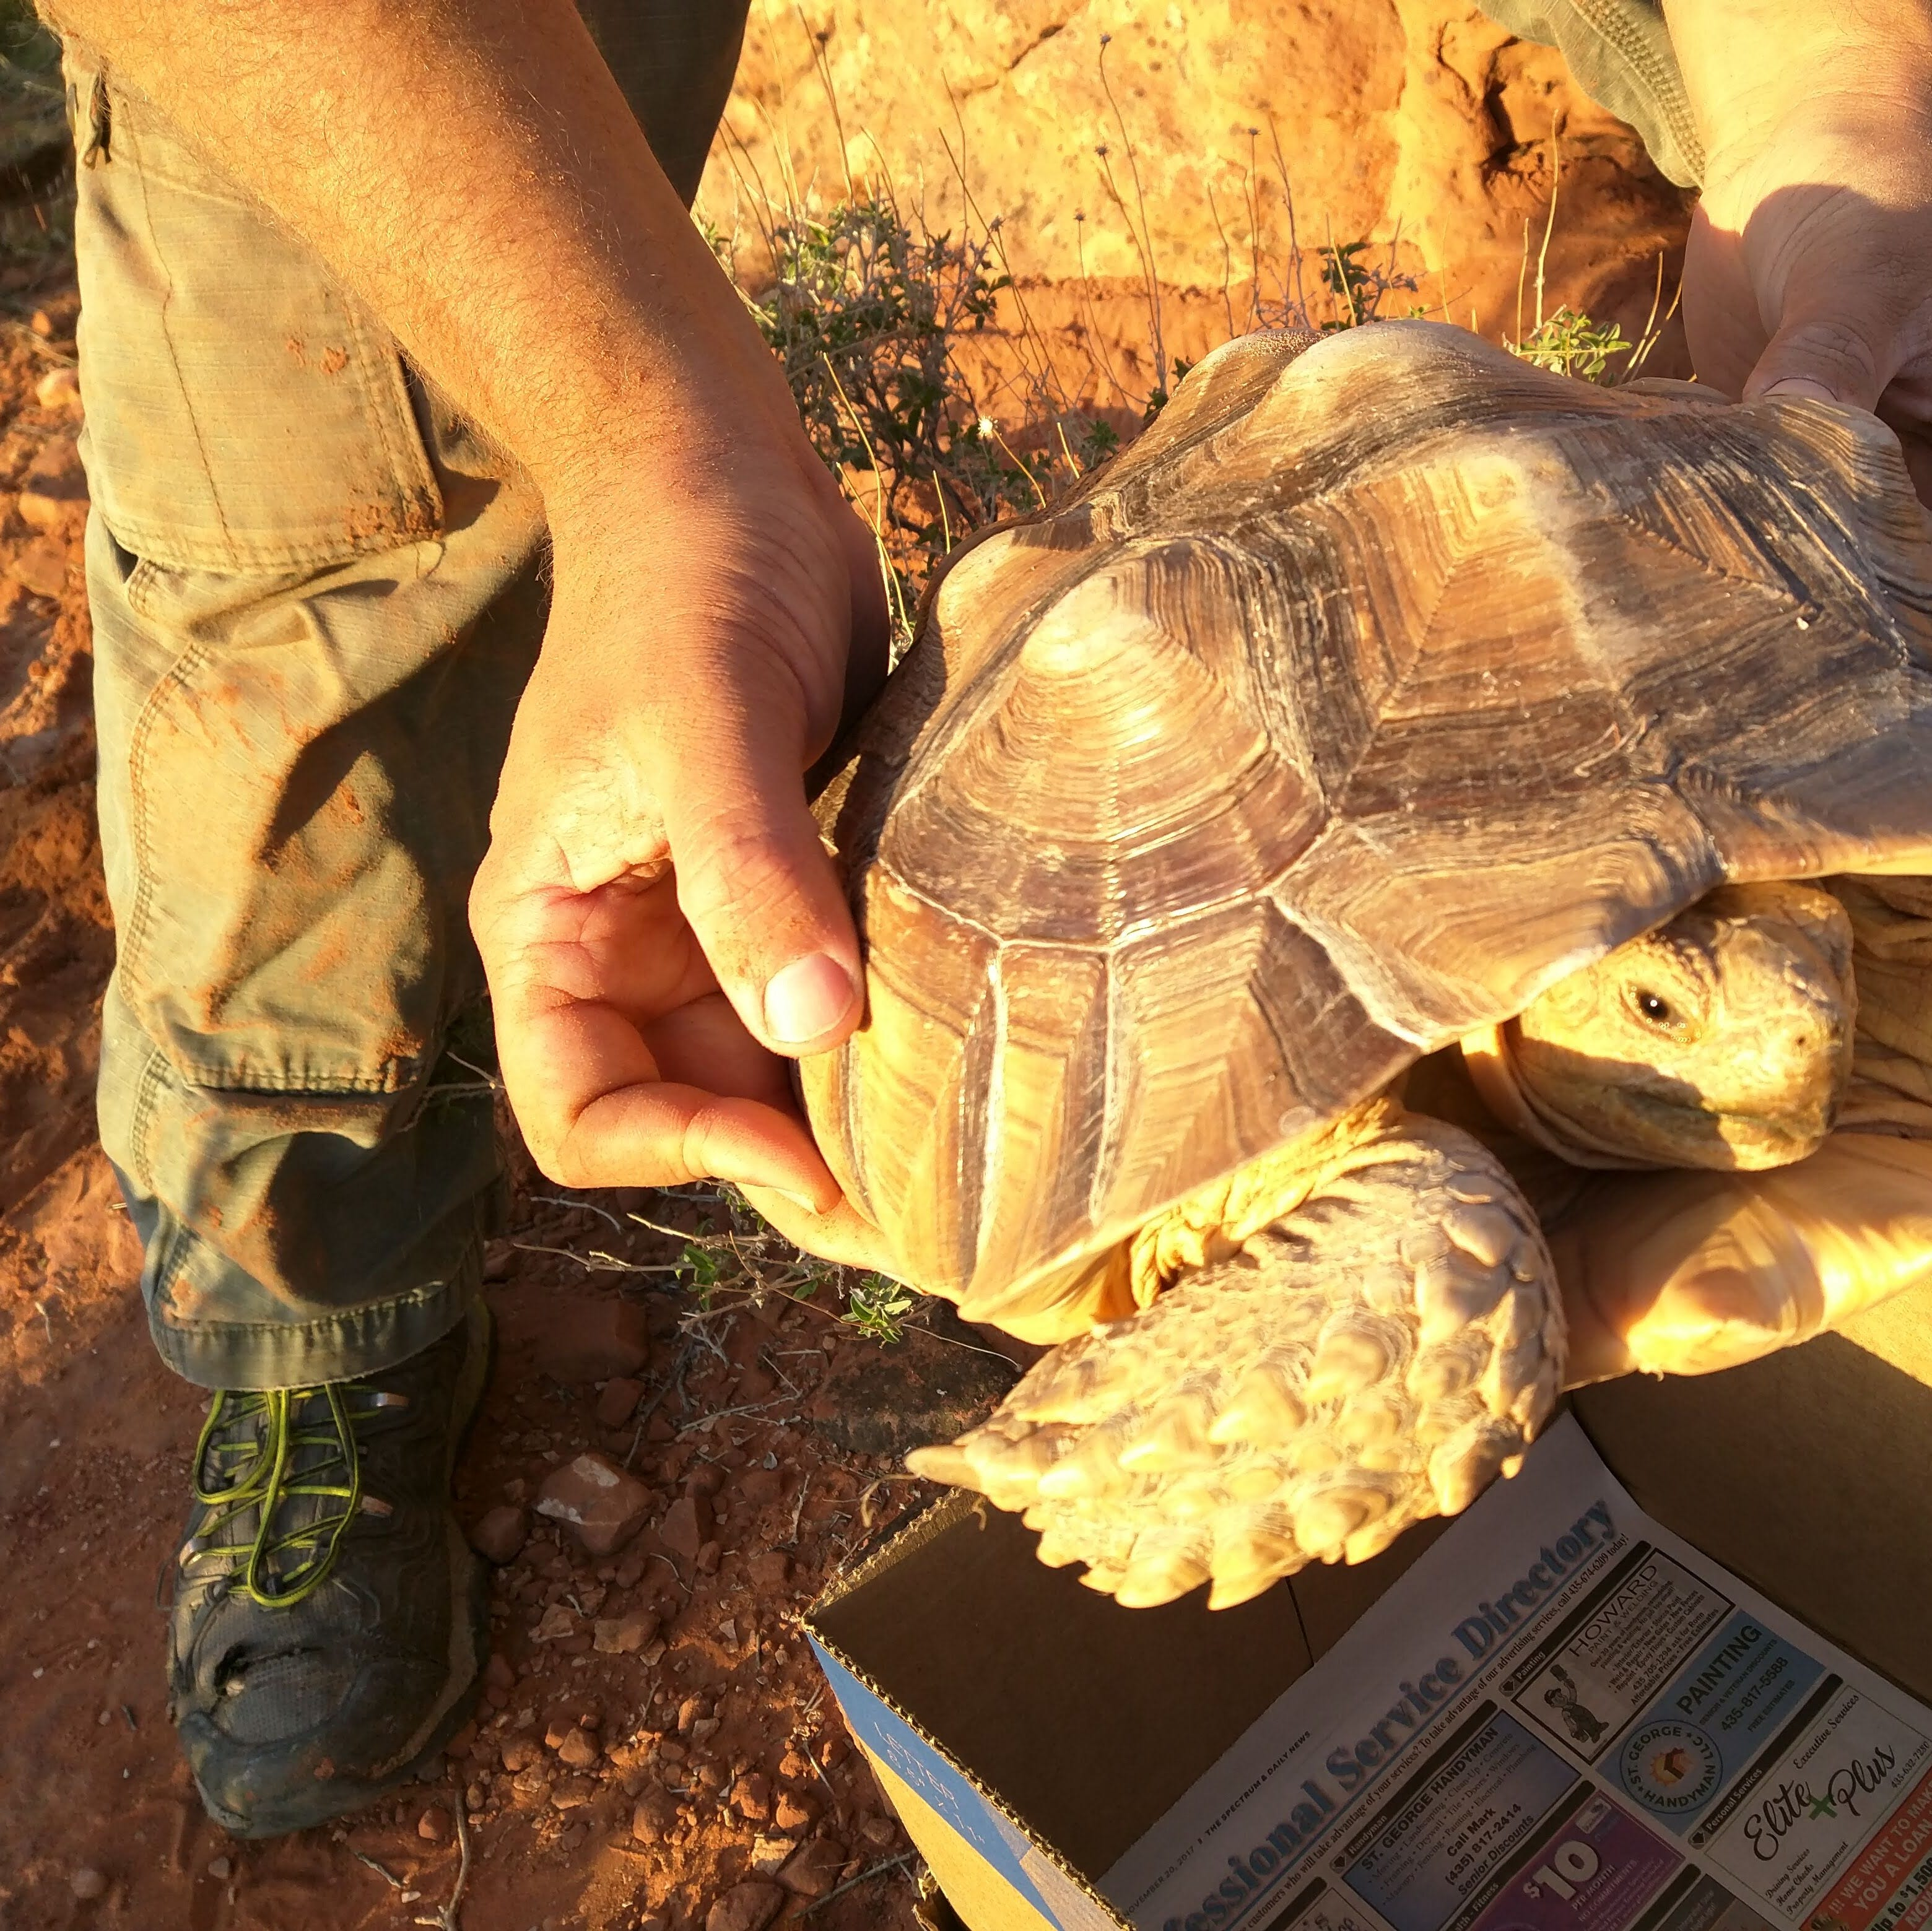 Wildlife officials find non-native tortoises in Red Cliffs Desert Reserve